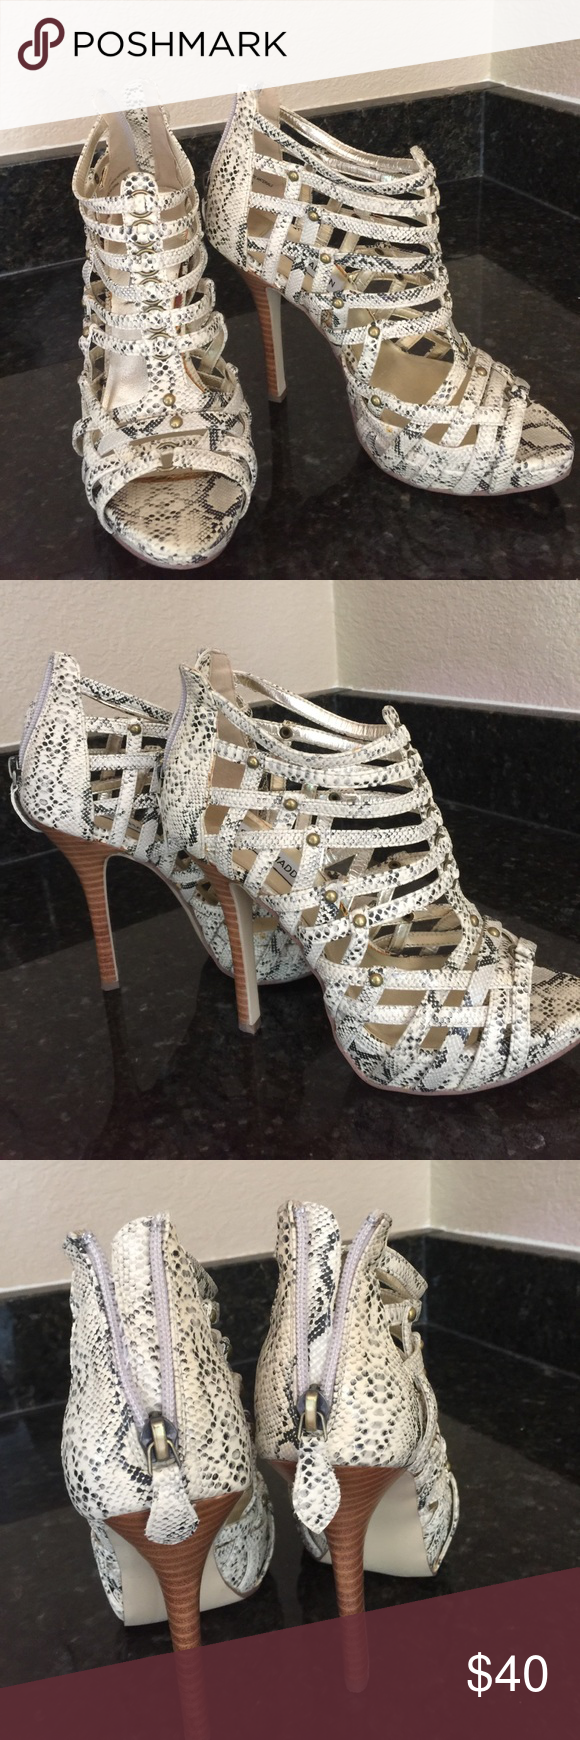 Steve Madden Snake Embossed heels Gently worn vanilla colored caged heels by Steve Madden with snake embossed pattern and a zipper in the back for easy access, they have a light brown stacked heel that will be a beautiful statement shoe for an evening out with the girls or date night! 💕 Gorgeous!🌹 Steve Madden Shoes Heels